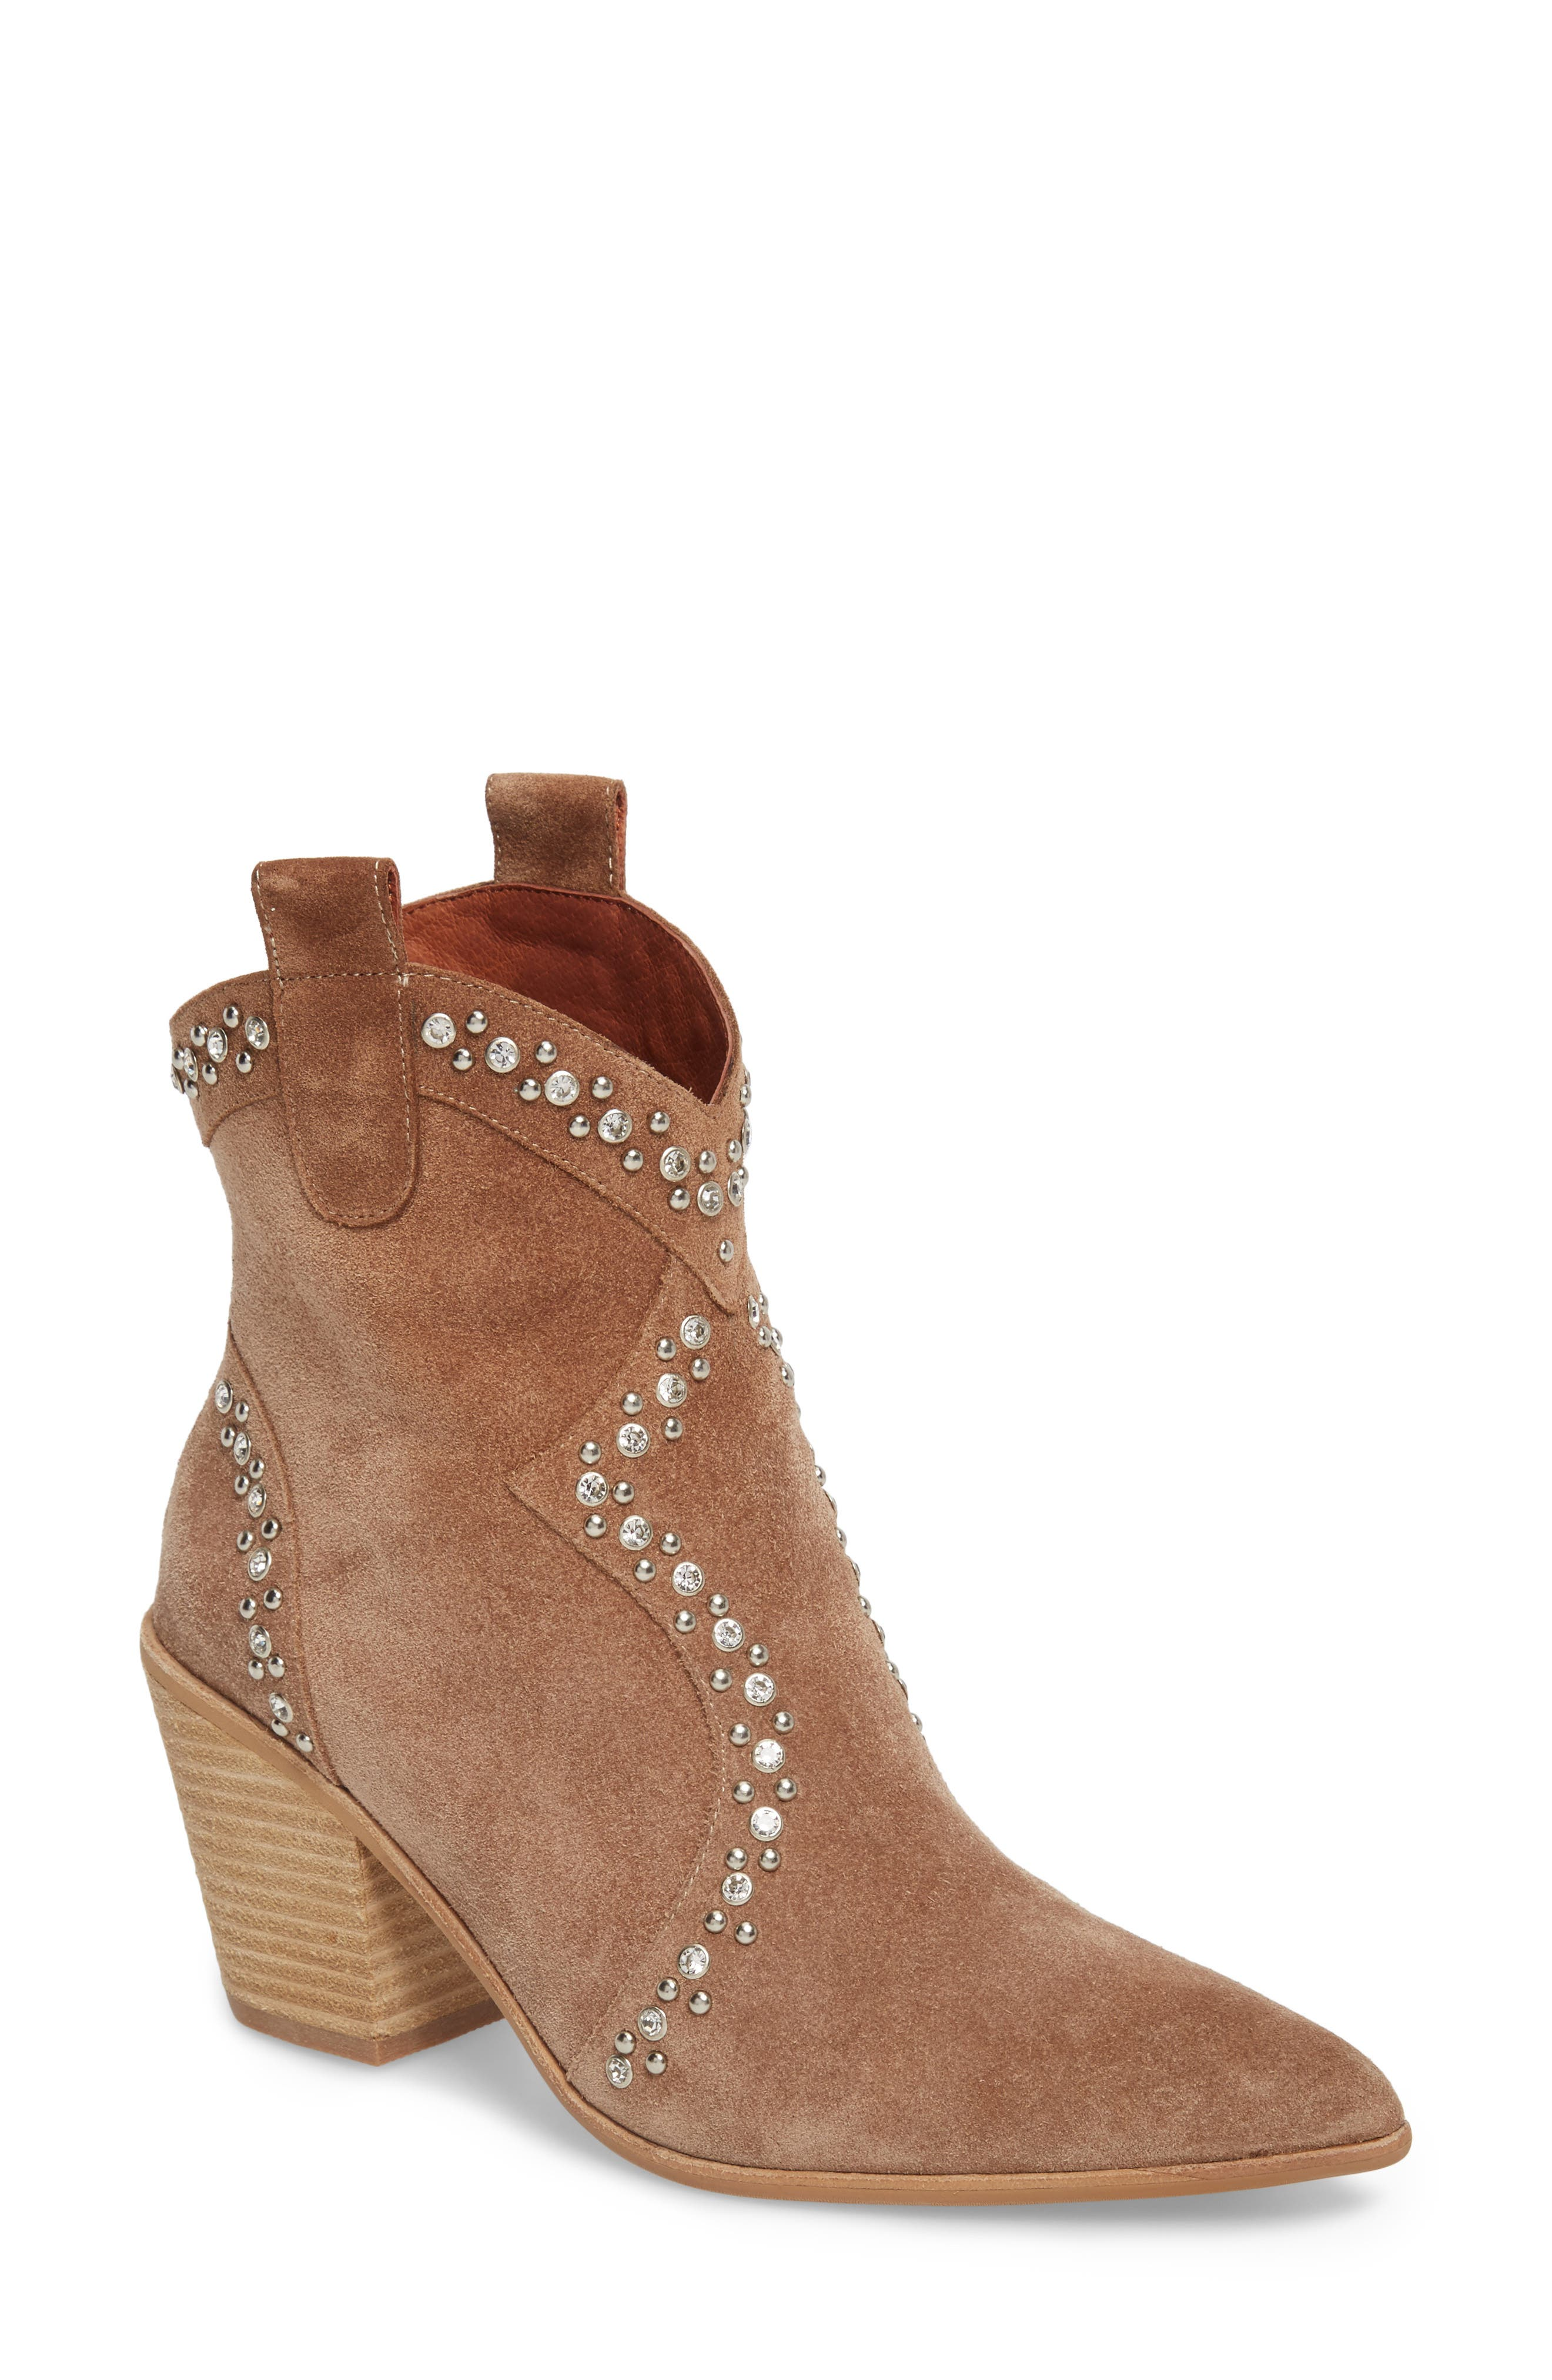 Main Image - Jeffrey Campbell Nightwing Crystal Stud Bootie (Women)